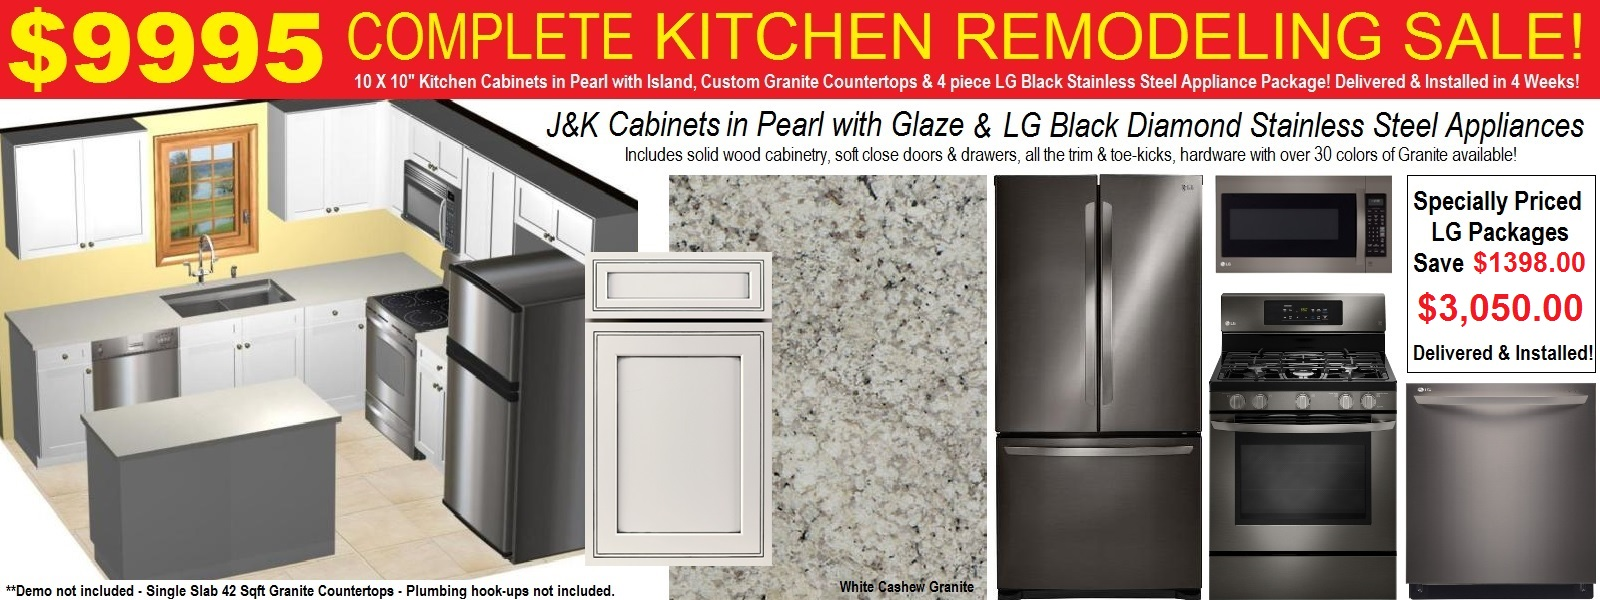 kitchenazcabinets kitchen remodeling phoenix az Kitchen Cabinets Countertops Glendale AZ